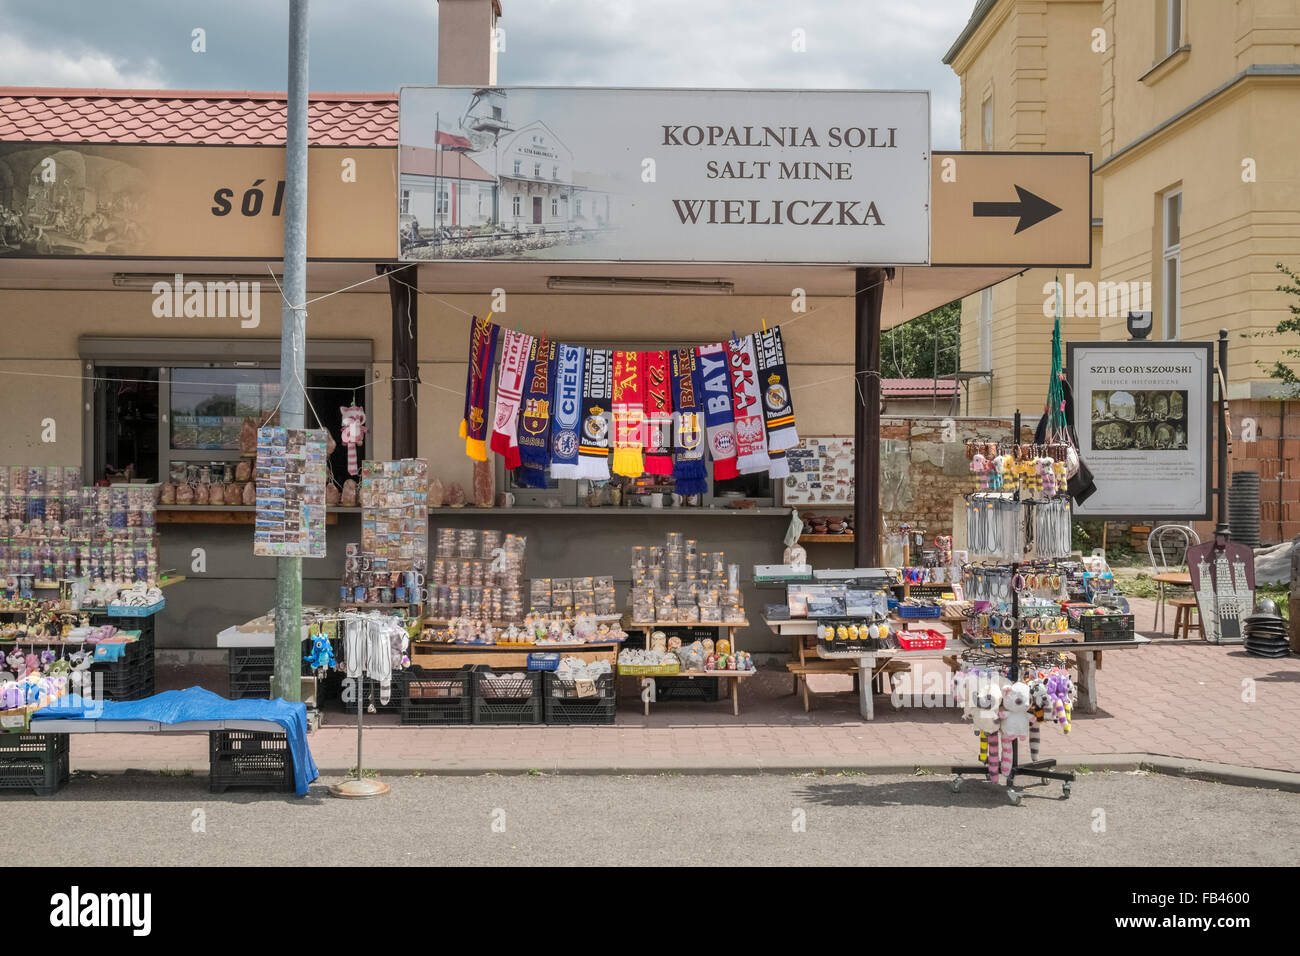 Tourist Souvenir Shop Near The Wieliczka Salt Mine Krakow Poland Stock Photo Royalty Free